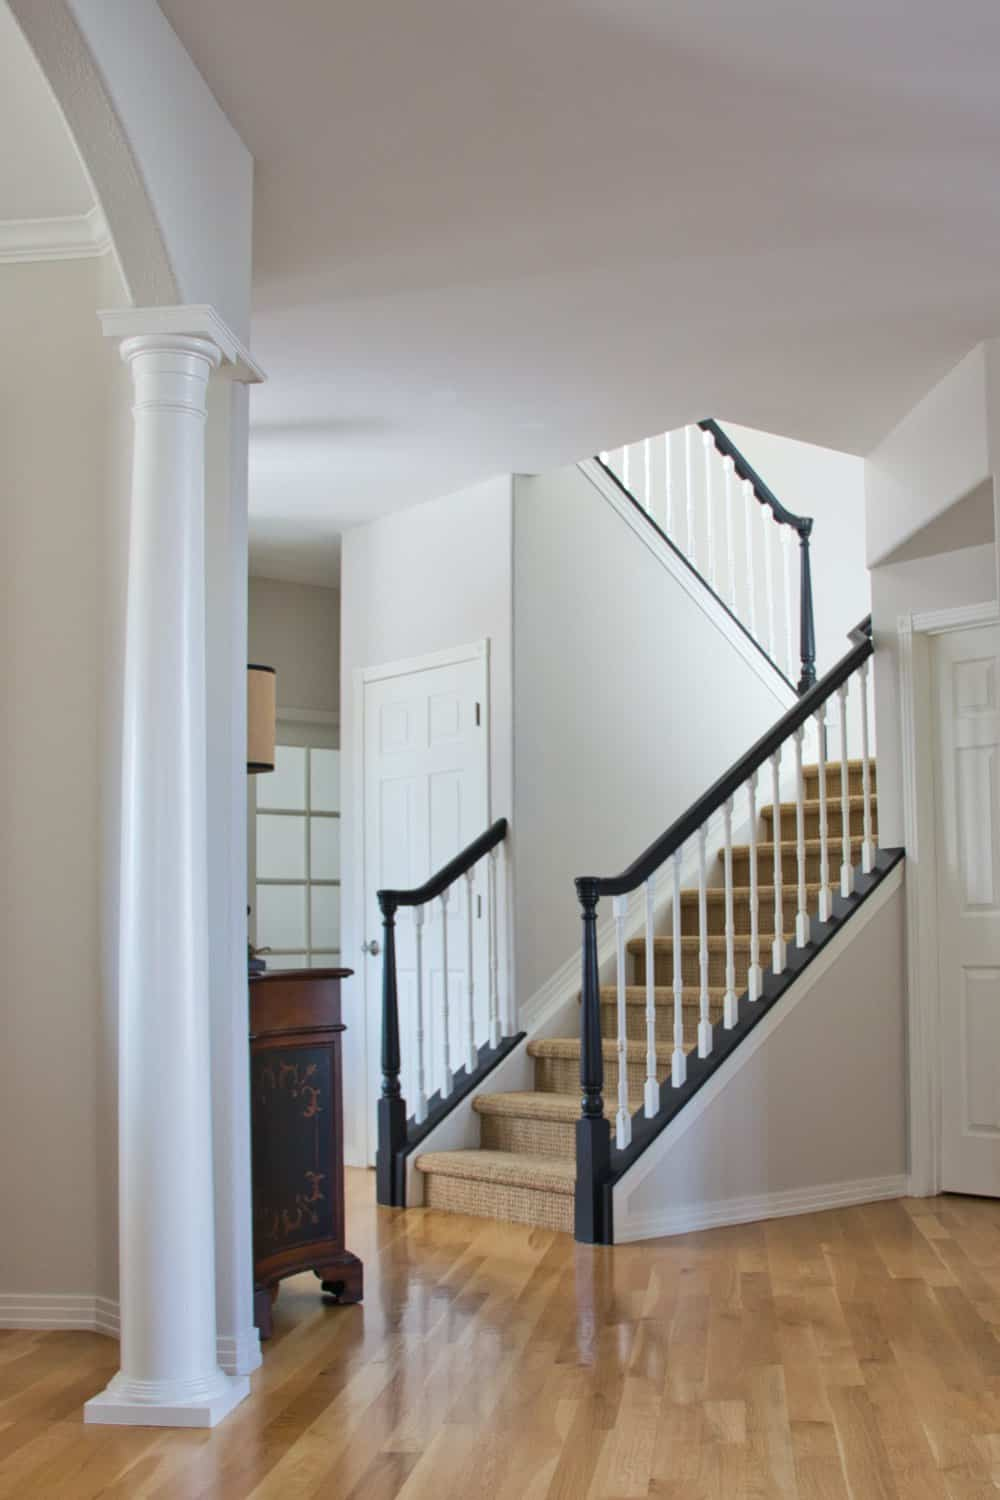 Traditional stairway painted with Classic Gray walls, Simply White trim and Tricorn Black handrails.